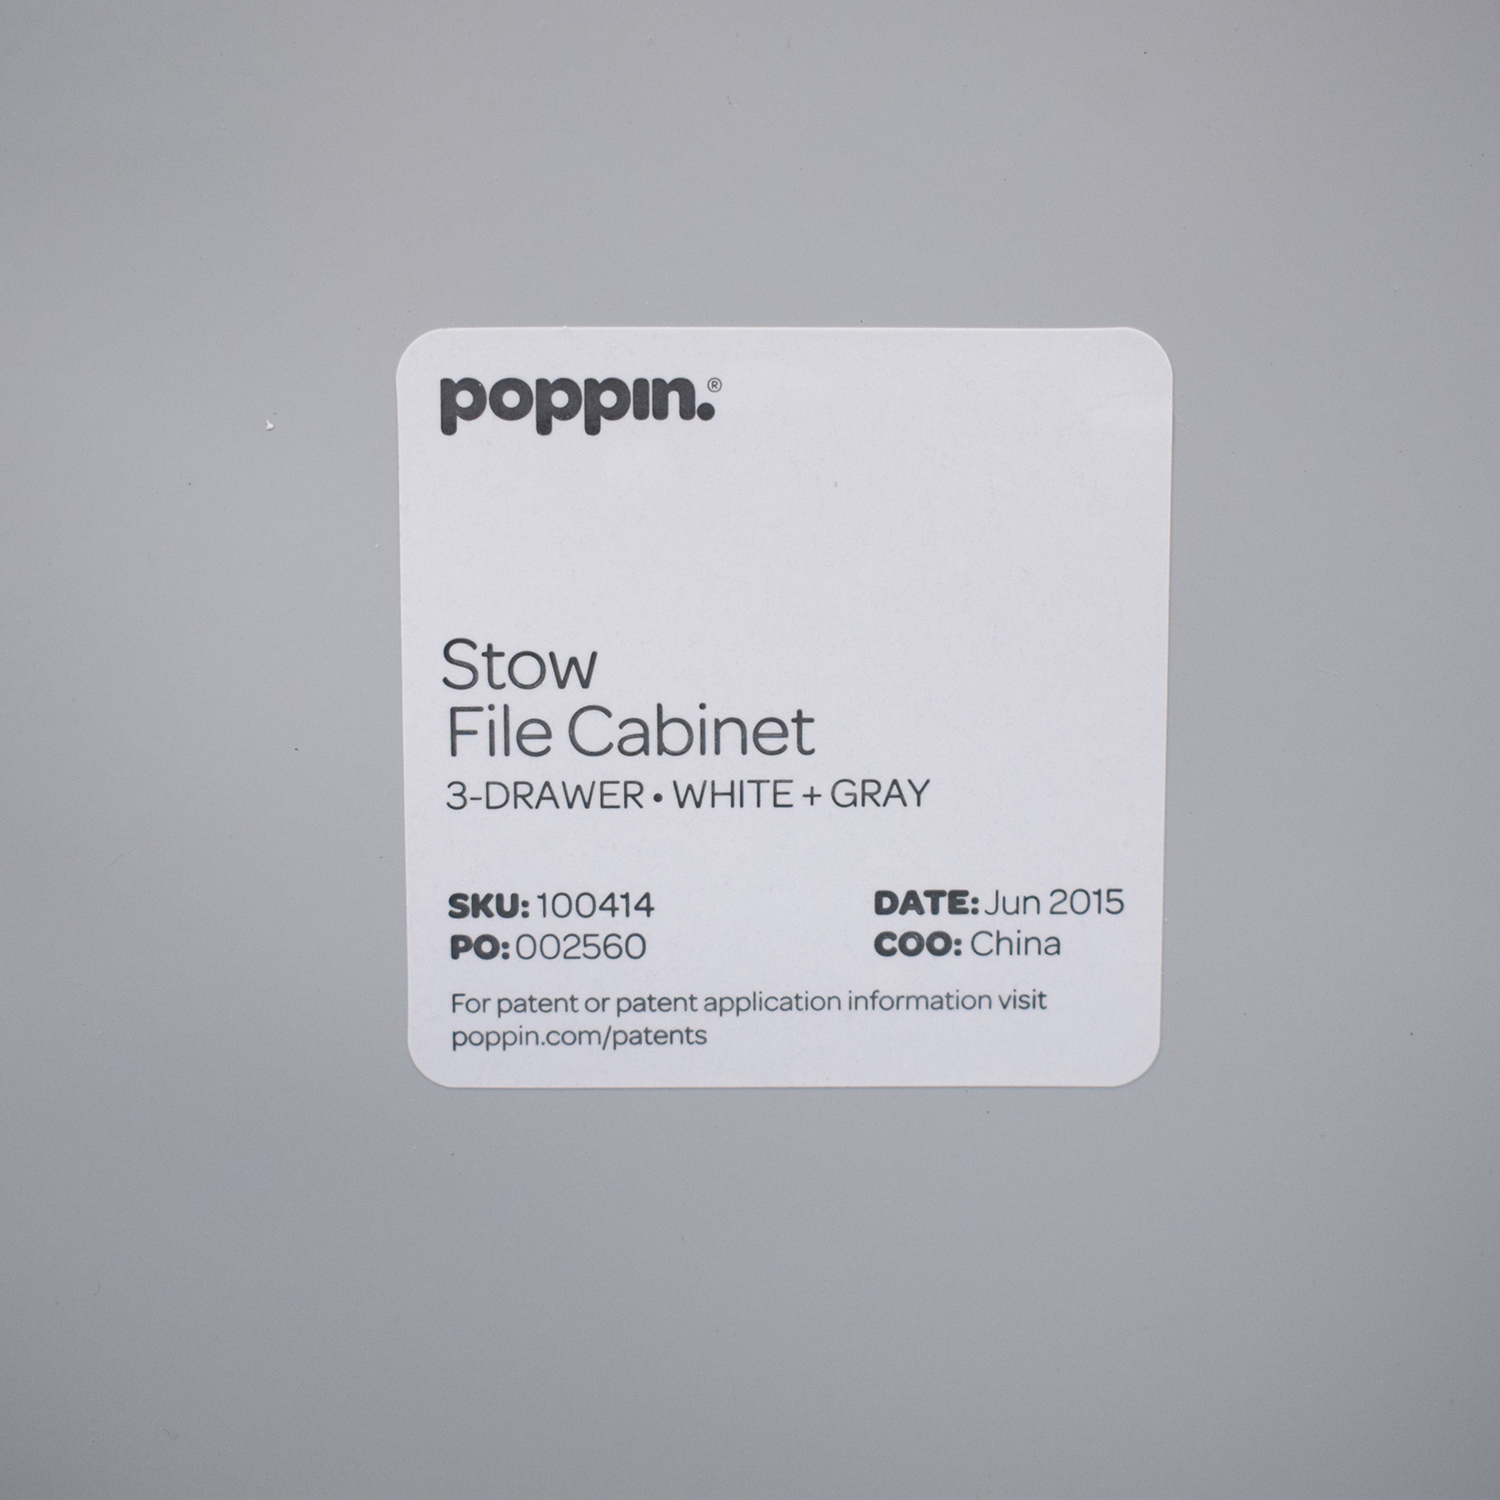 Poppin Poppin Stow File Cabinet discount